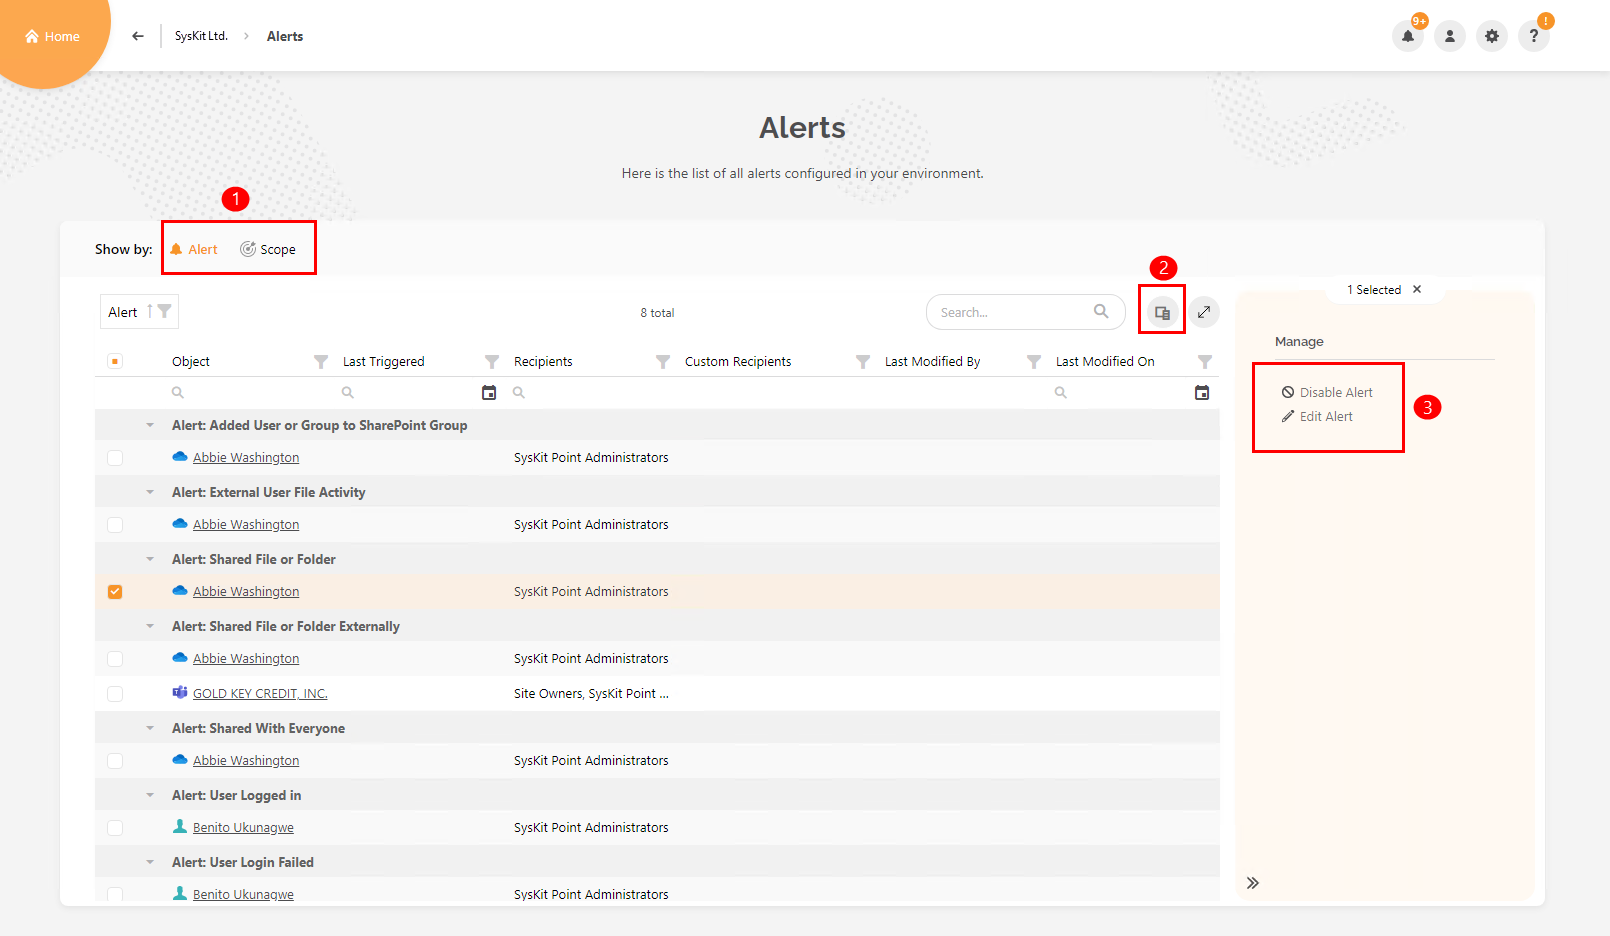 Alerts overview screen